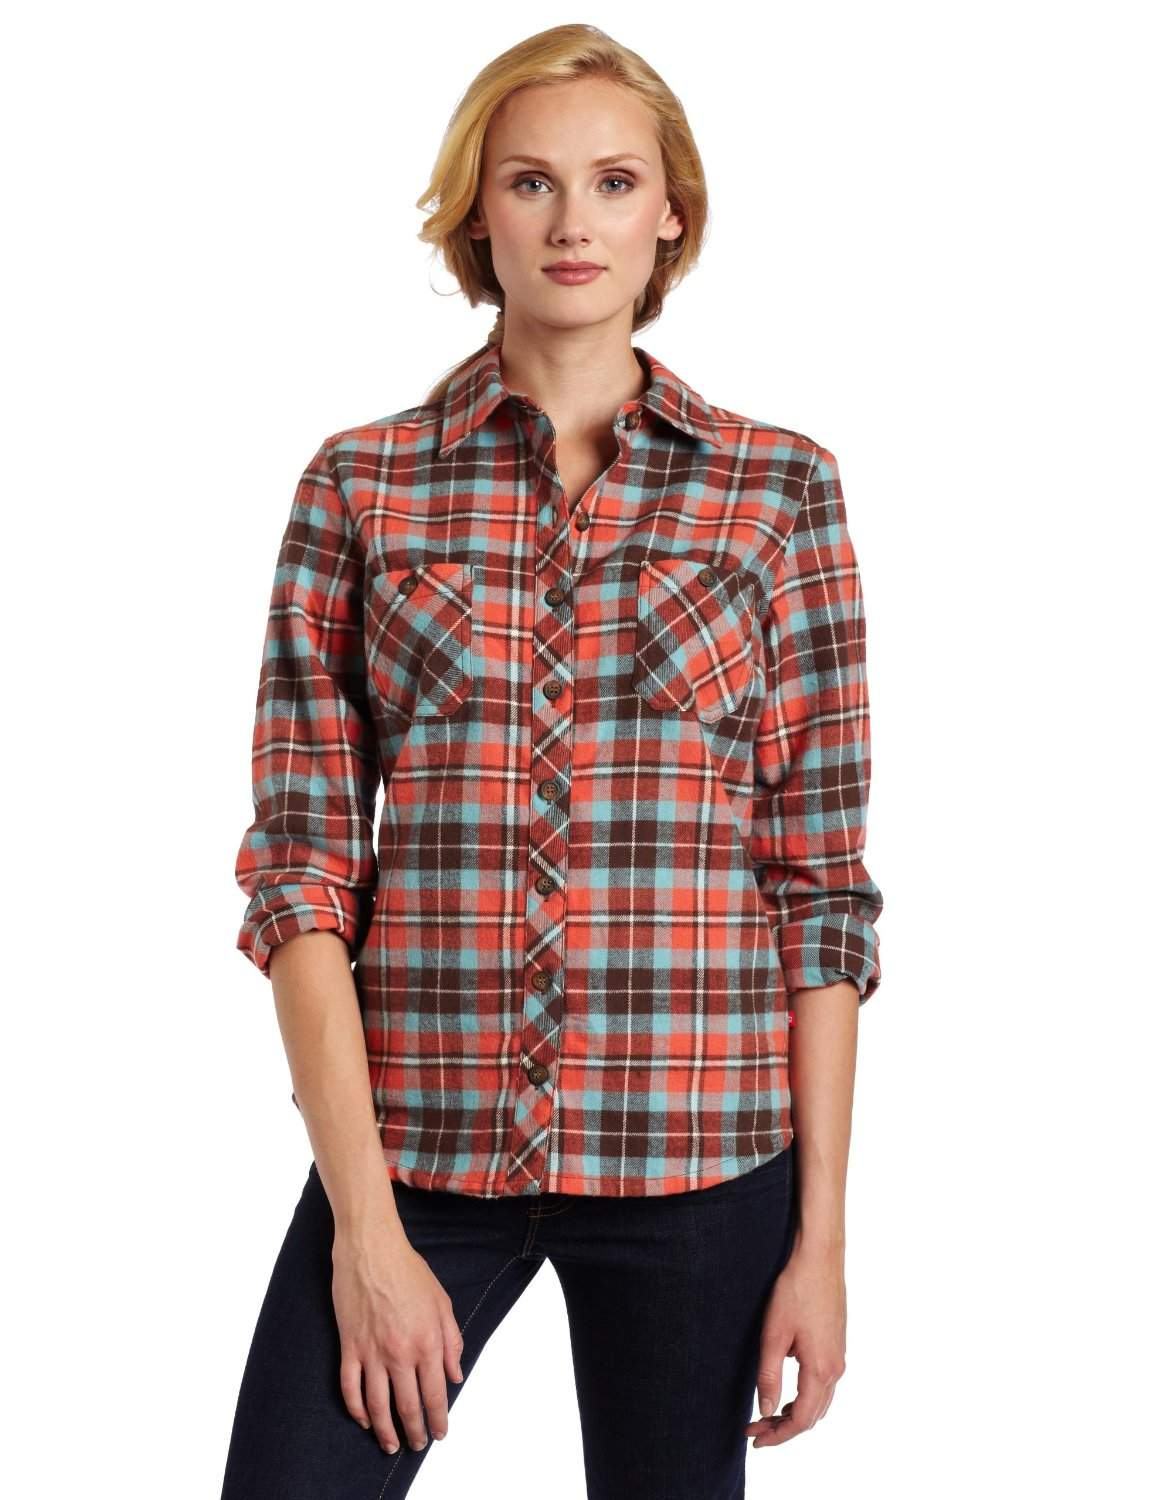 Womens flannel shirts cheap flannel shirts for women for Where to buy cheap plaid shirts